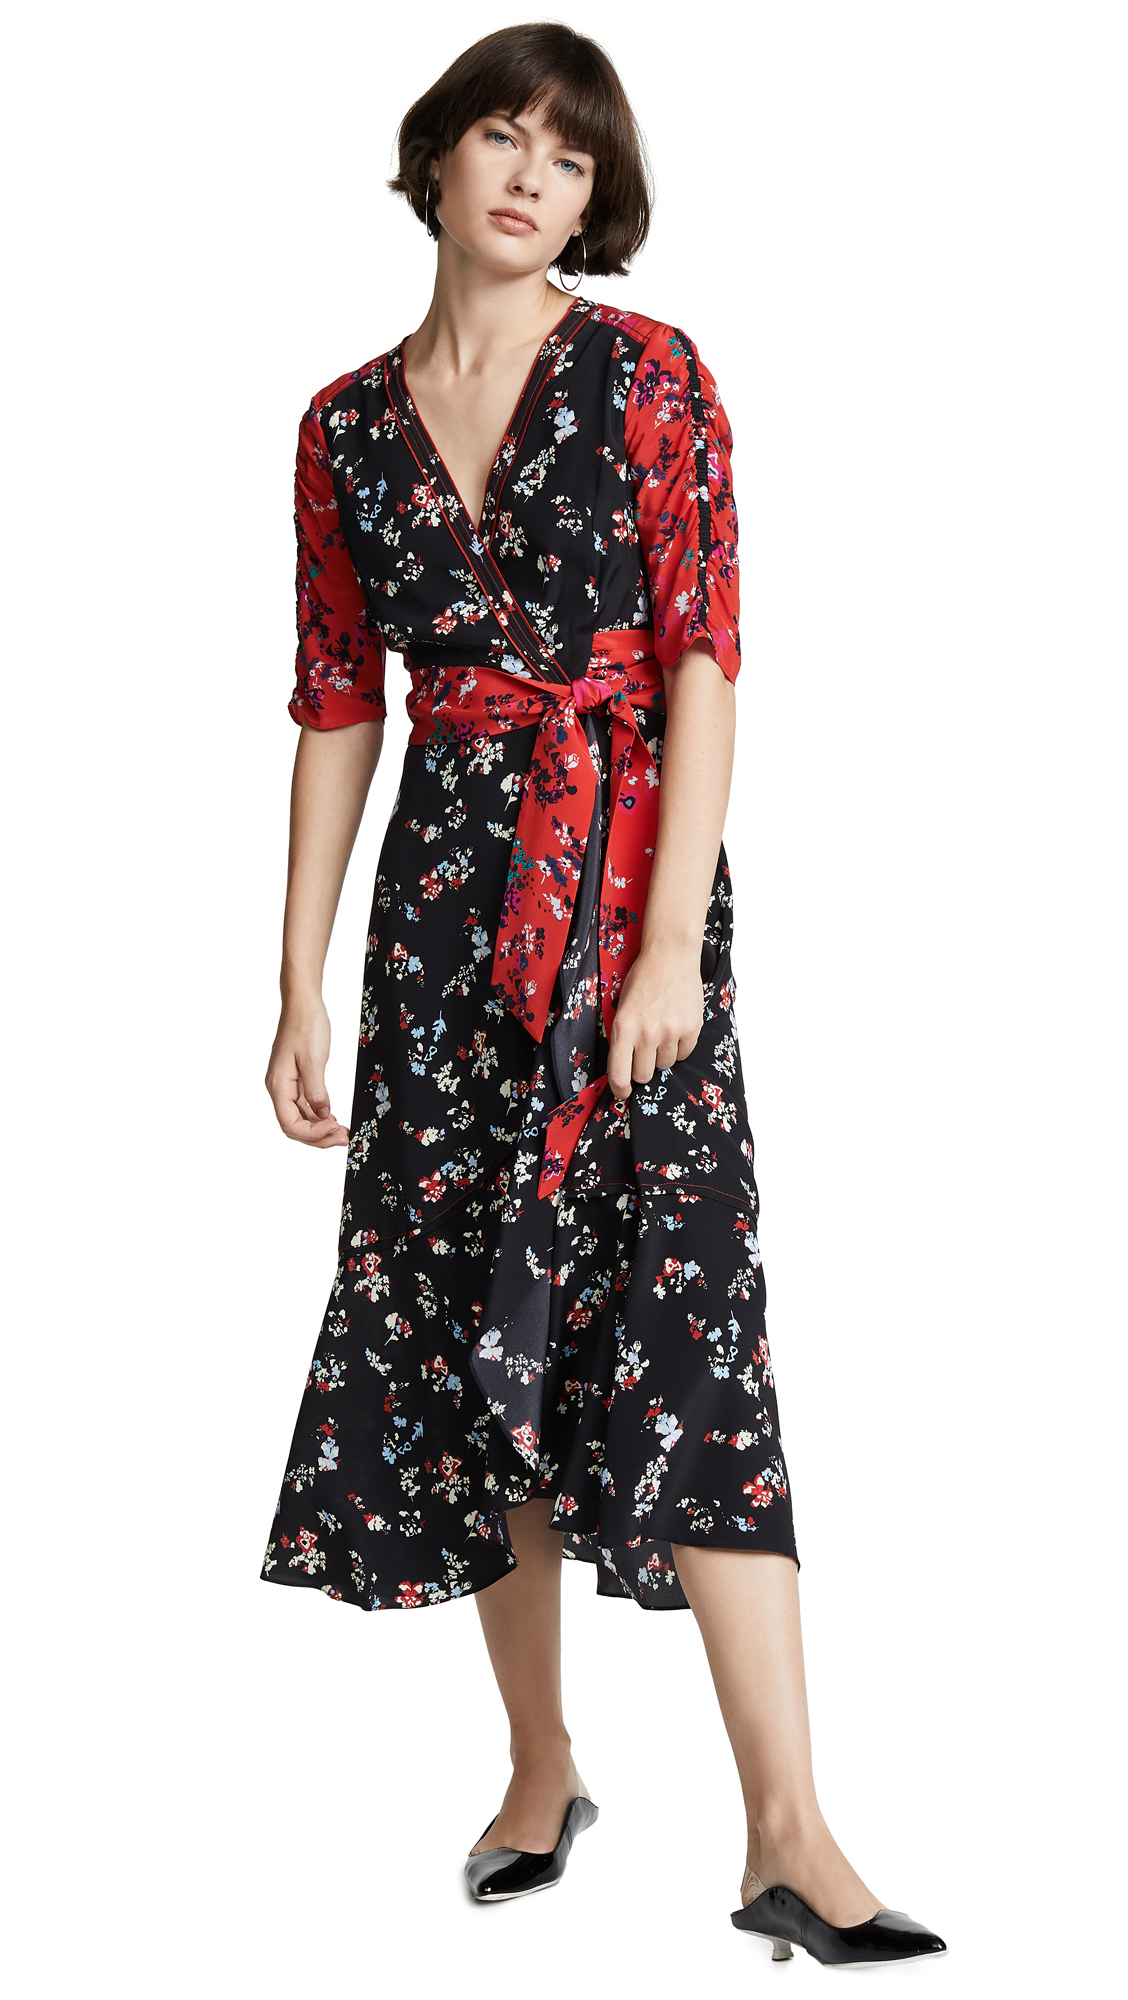 Tanya Taylor Blaire Dress - Red/Black